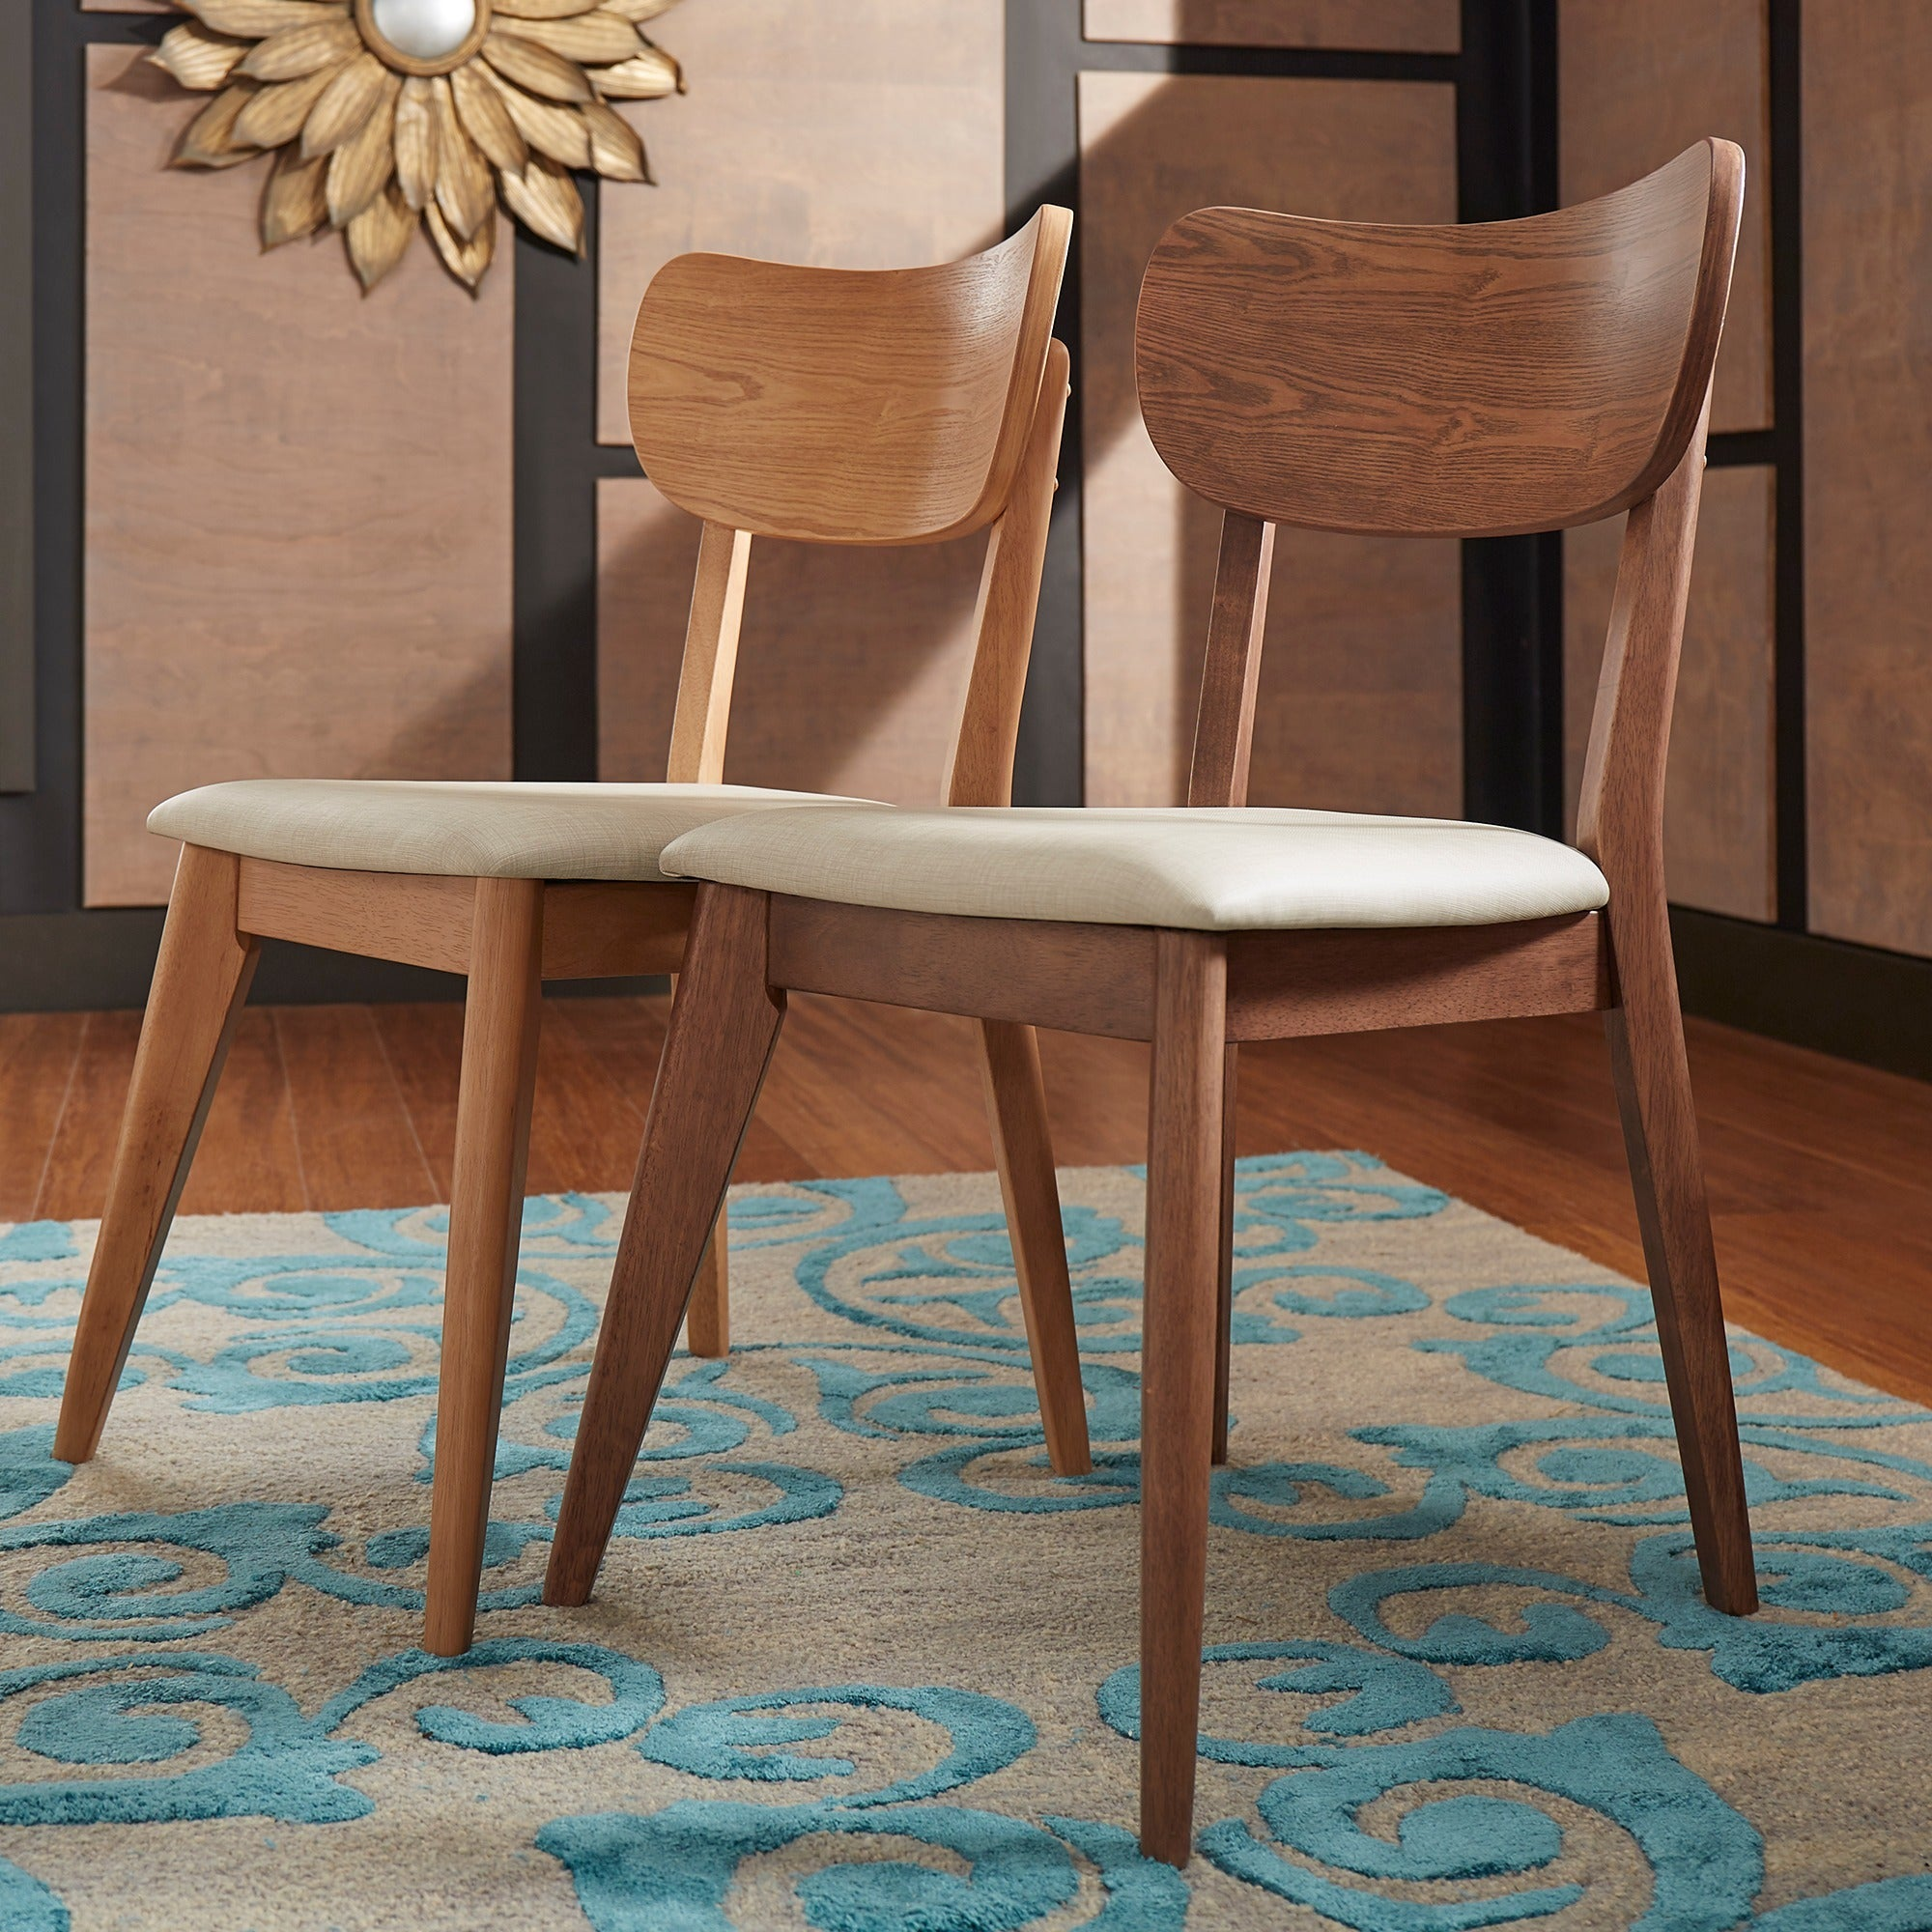 Penelope Danish Modern Tapered-leg Dining Chair (Set of 2) iNSPIRE Q Modern  - Free Shipping Today - Overstock.com - 18715927